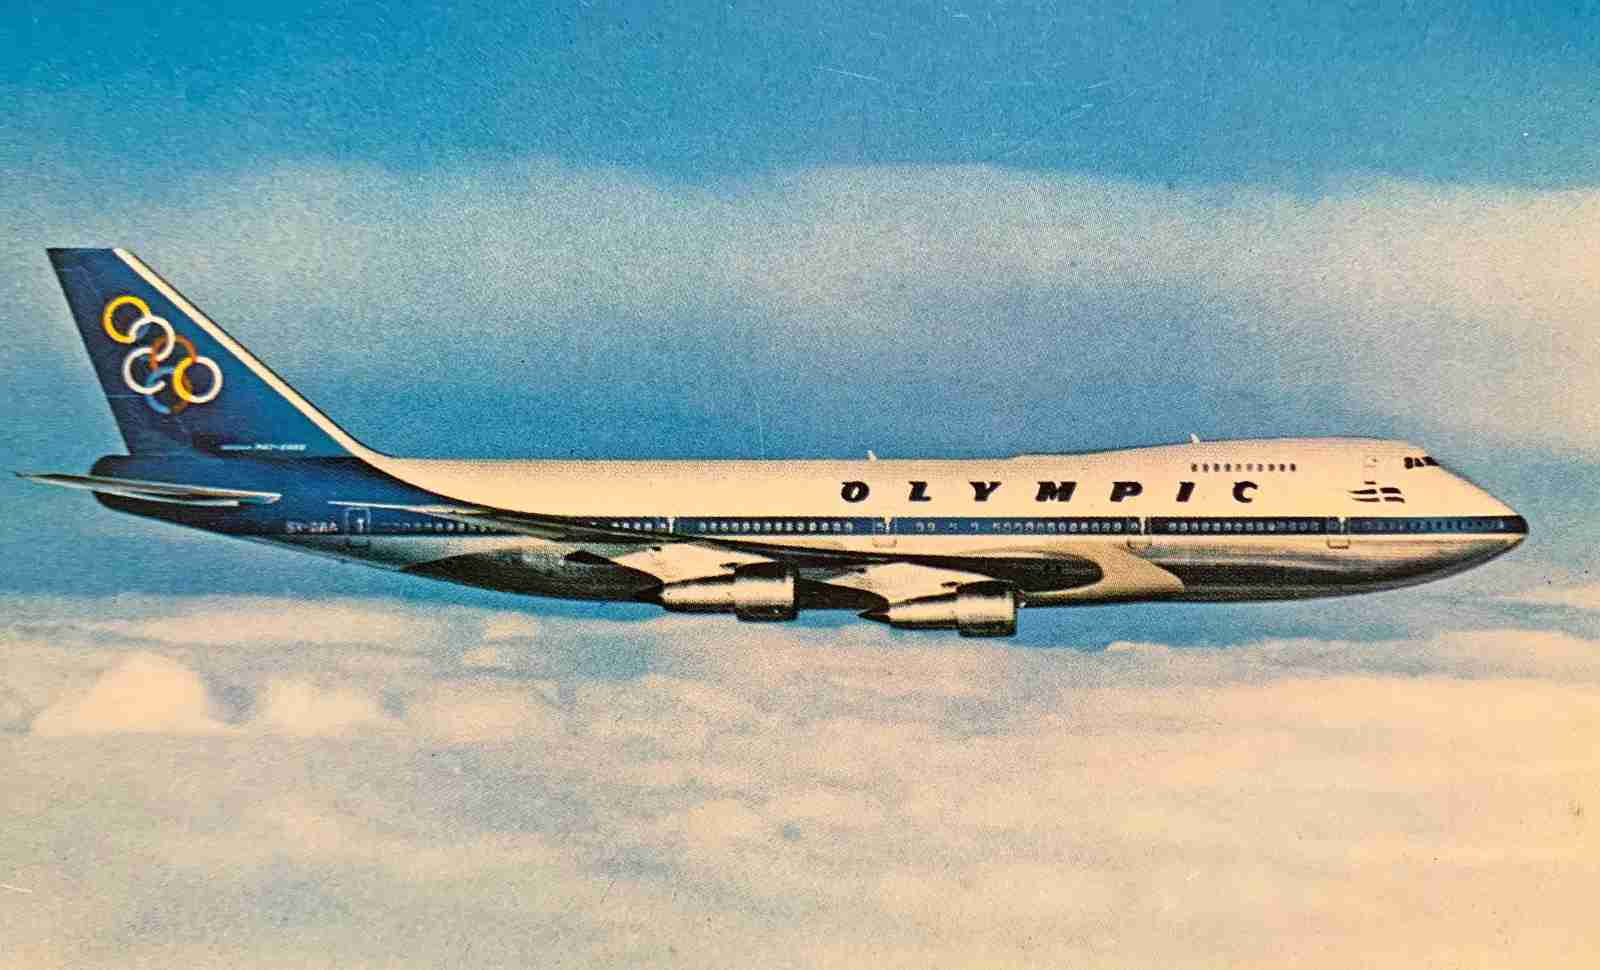 Now that's just gorgeous. An Olympic 747-200